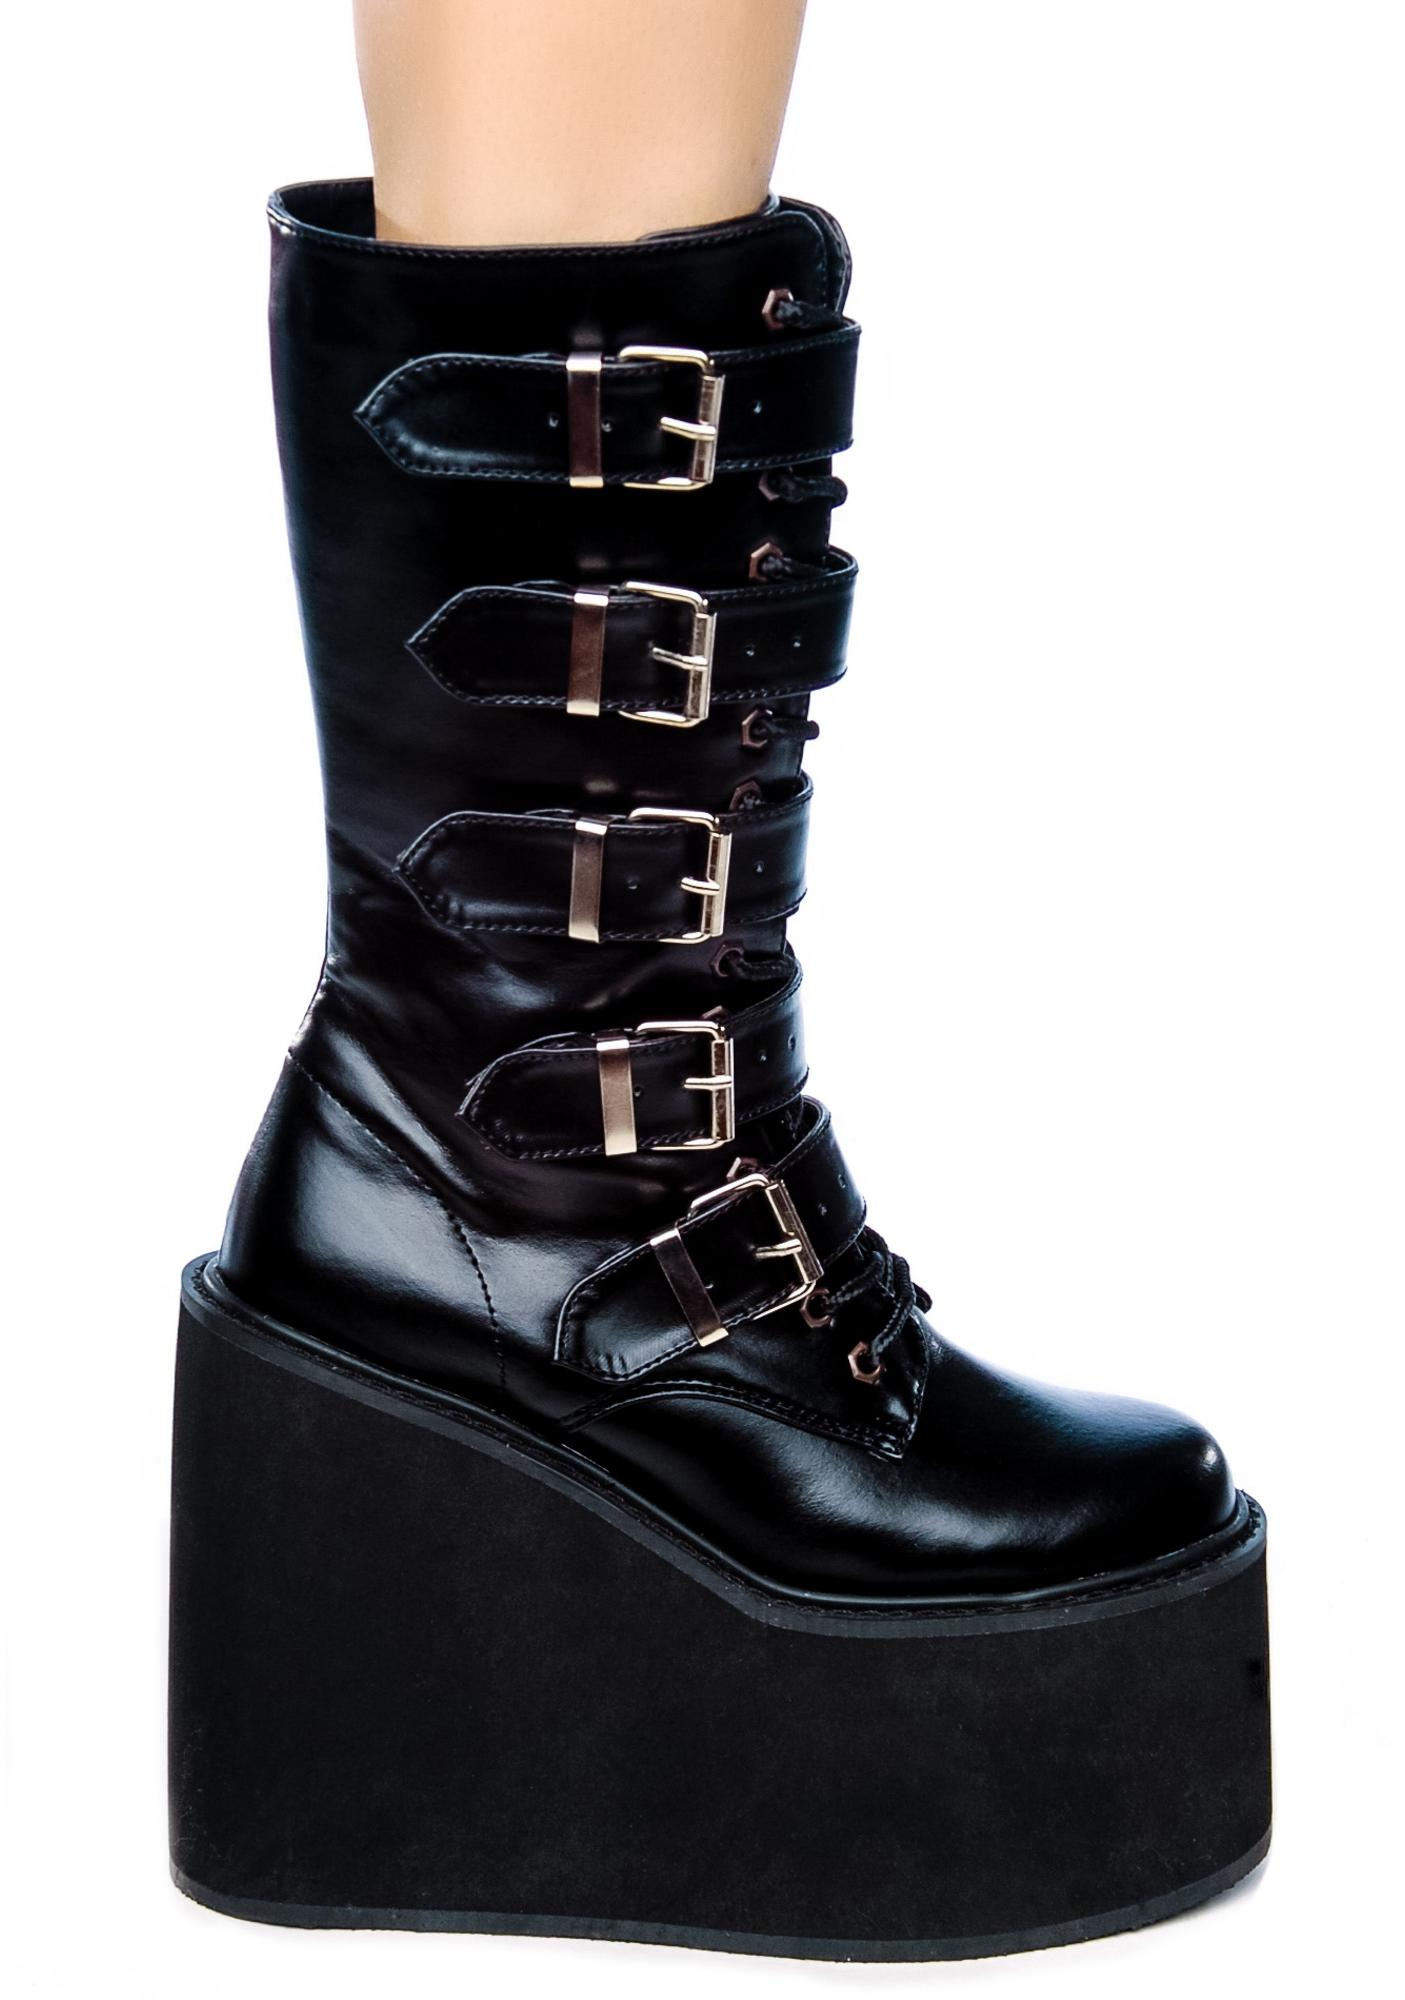 Club Exx Frostbitten Platform Boots at Dolls Kill, an online punk, goth, rave, kawaii, and streetwear clothing store. FAST & FREE WORLDWIDE SHIPPING. Shop trends and your favorite brands like Lime Crime, Wildfox Couture, Killstar, BOY London, and Y.R.U.